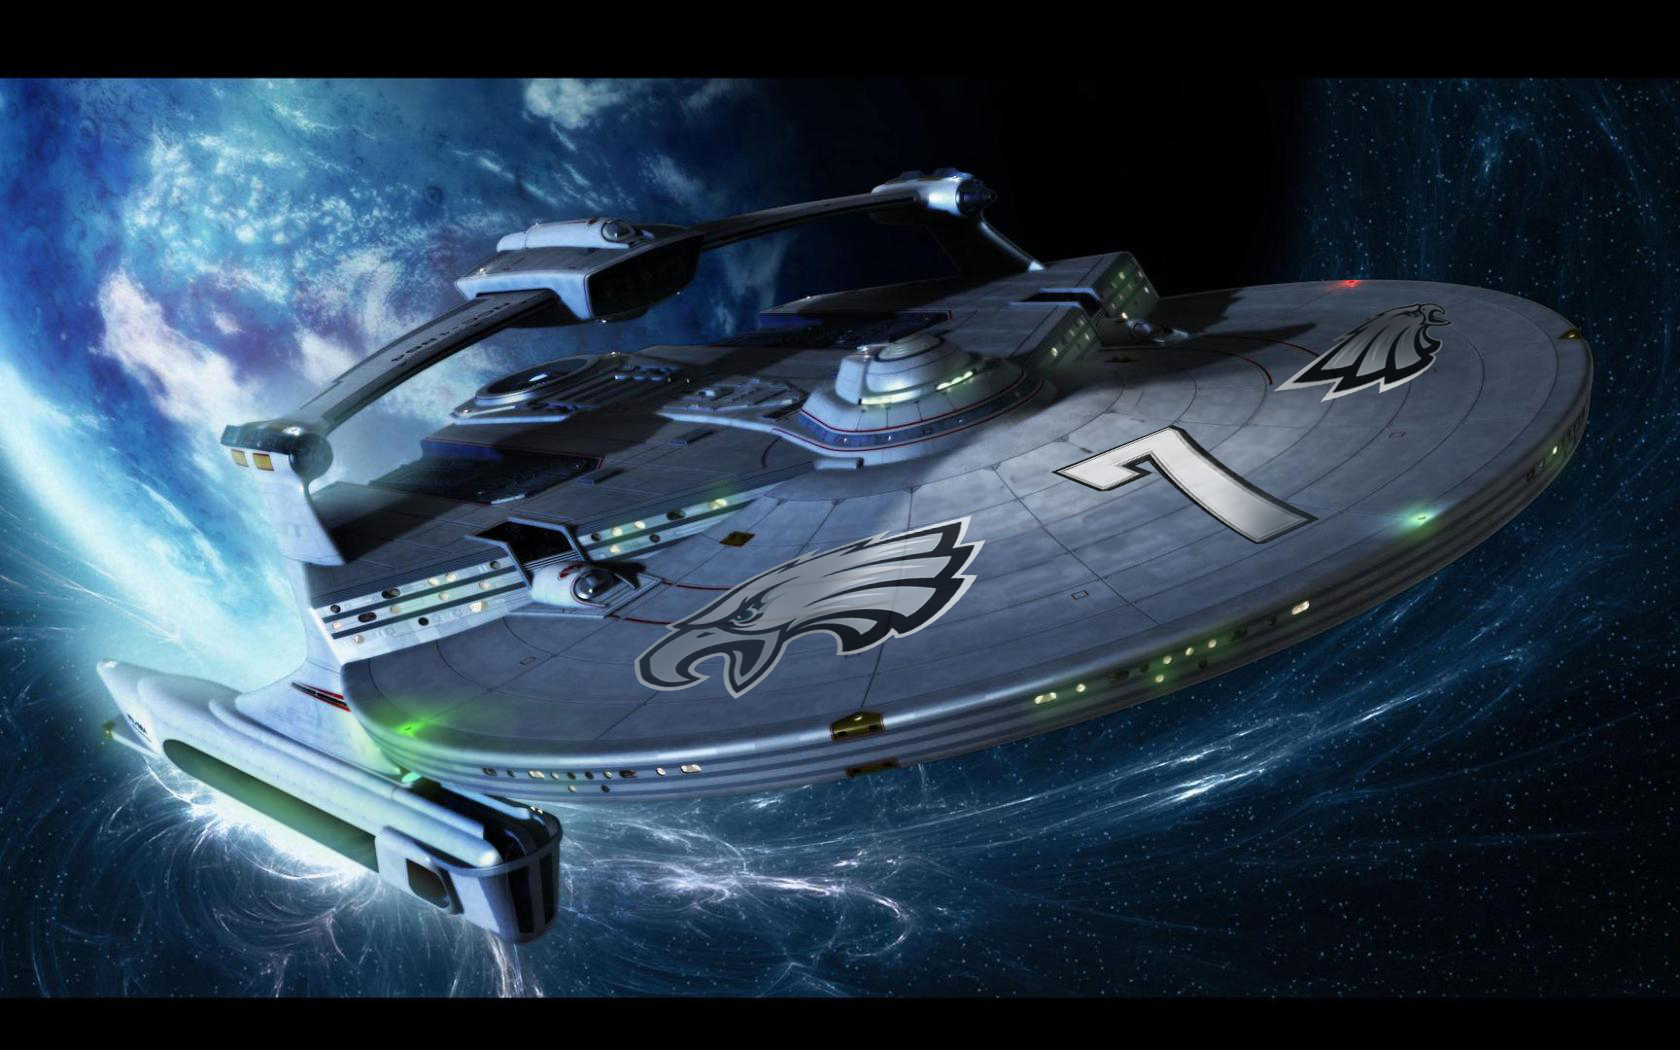 Michael Vick Starship 7 image created by Eagles fan Mike Cessario 1680x1050